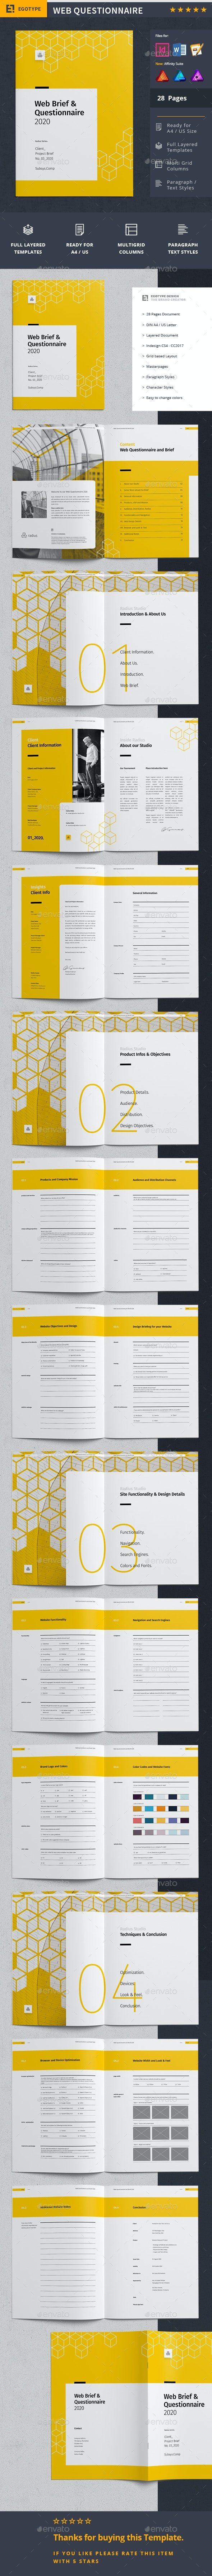 Web Brief Proposal - Proposals & Invoices Stationery